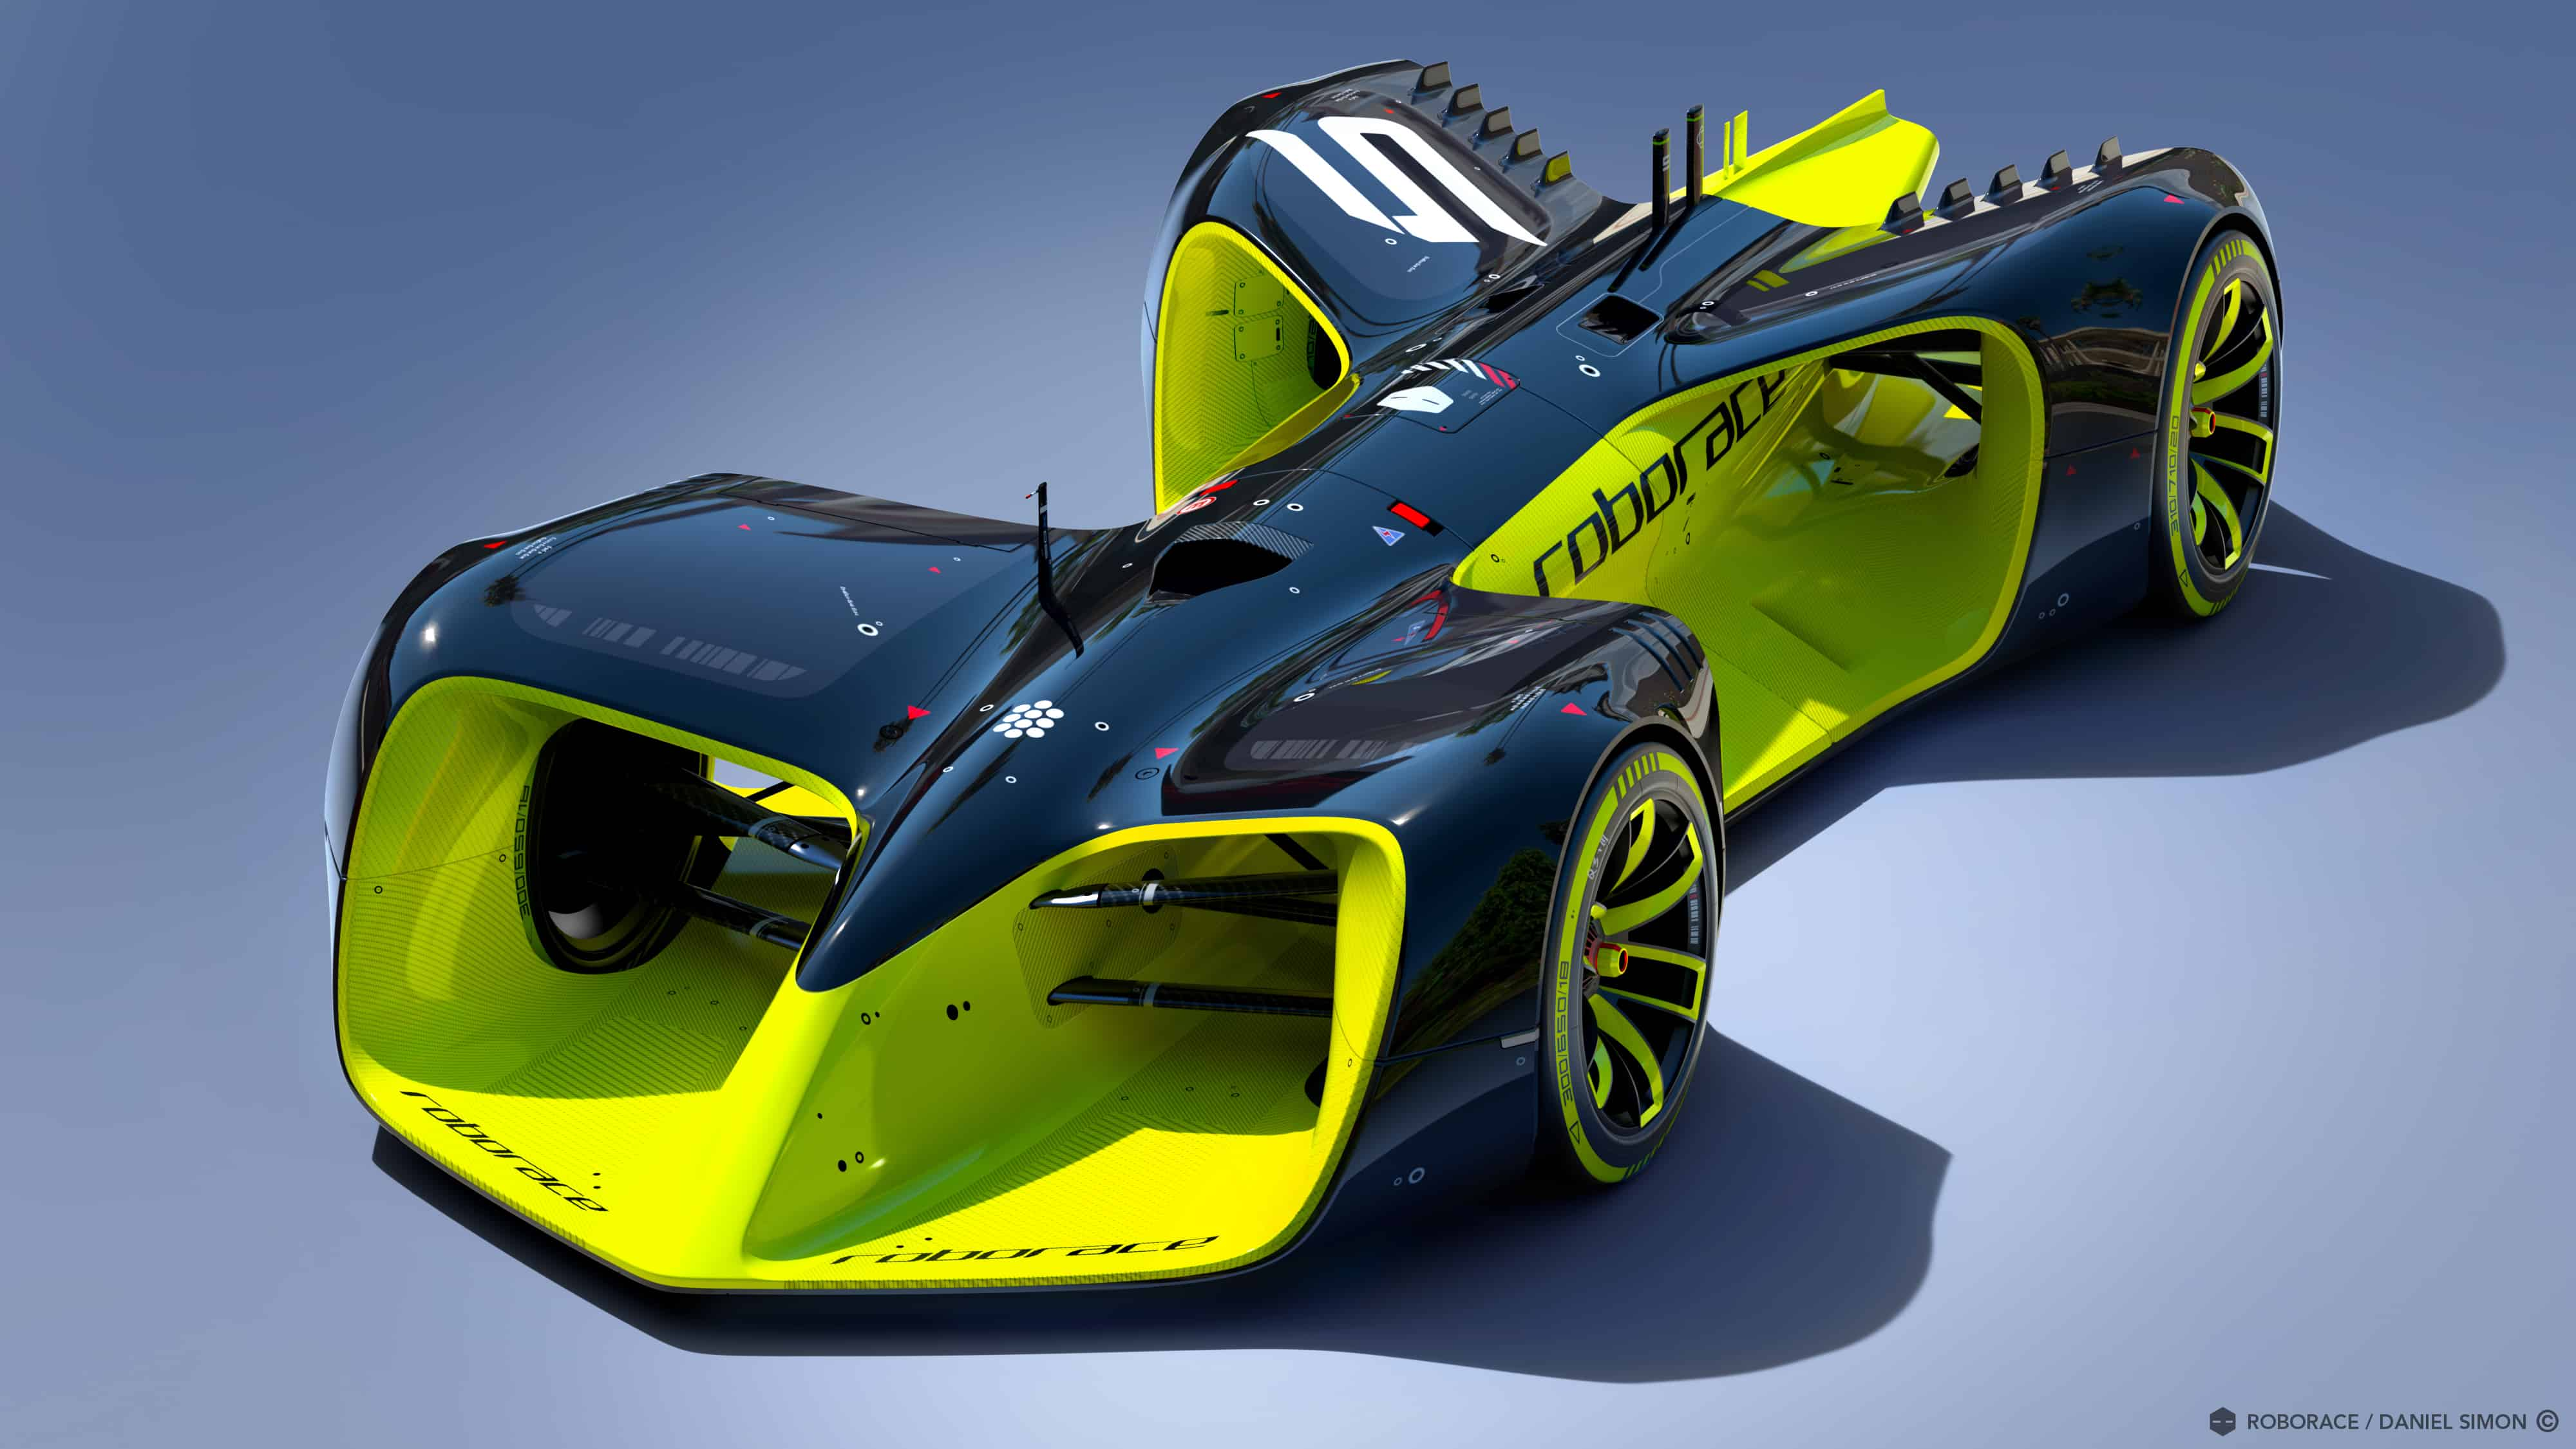 The racing-car of the future, coming soon to a street circuit near you. Image by Chief Design Officer Daniel Simon / Roborace Ltd.